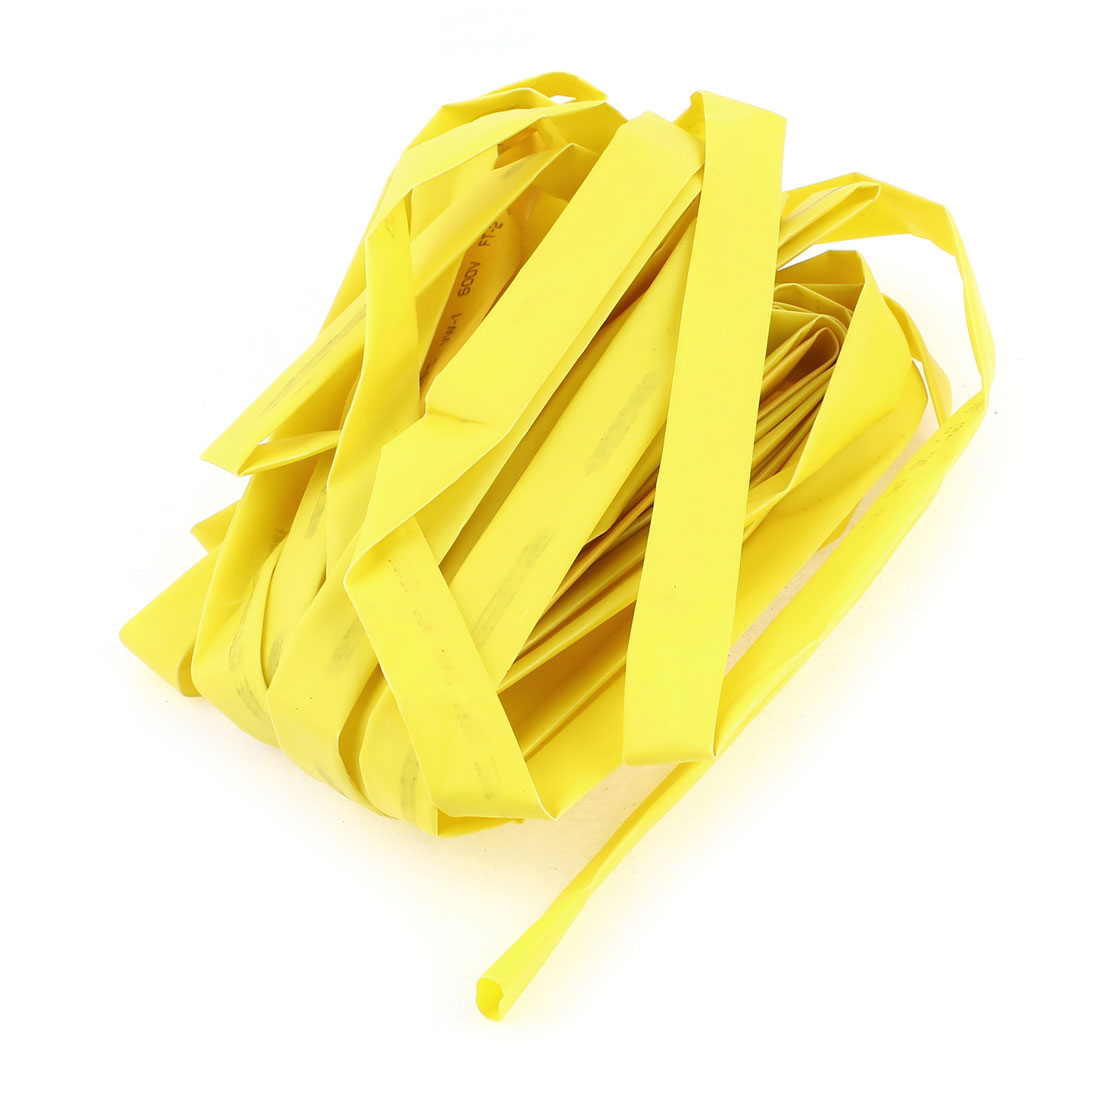 12mm Dia Polyolefin Heat Shrinkable Tube Shrink Tubing Wire Wrap 10M 33Ft Yellow